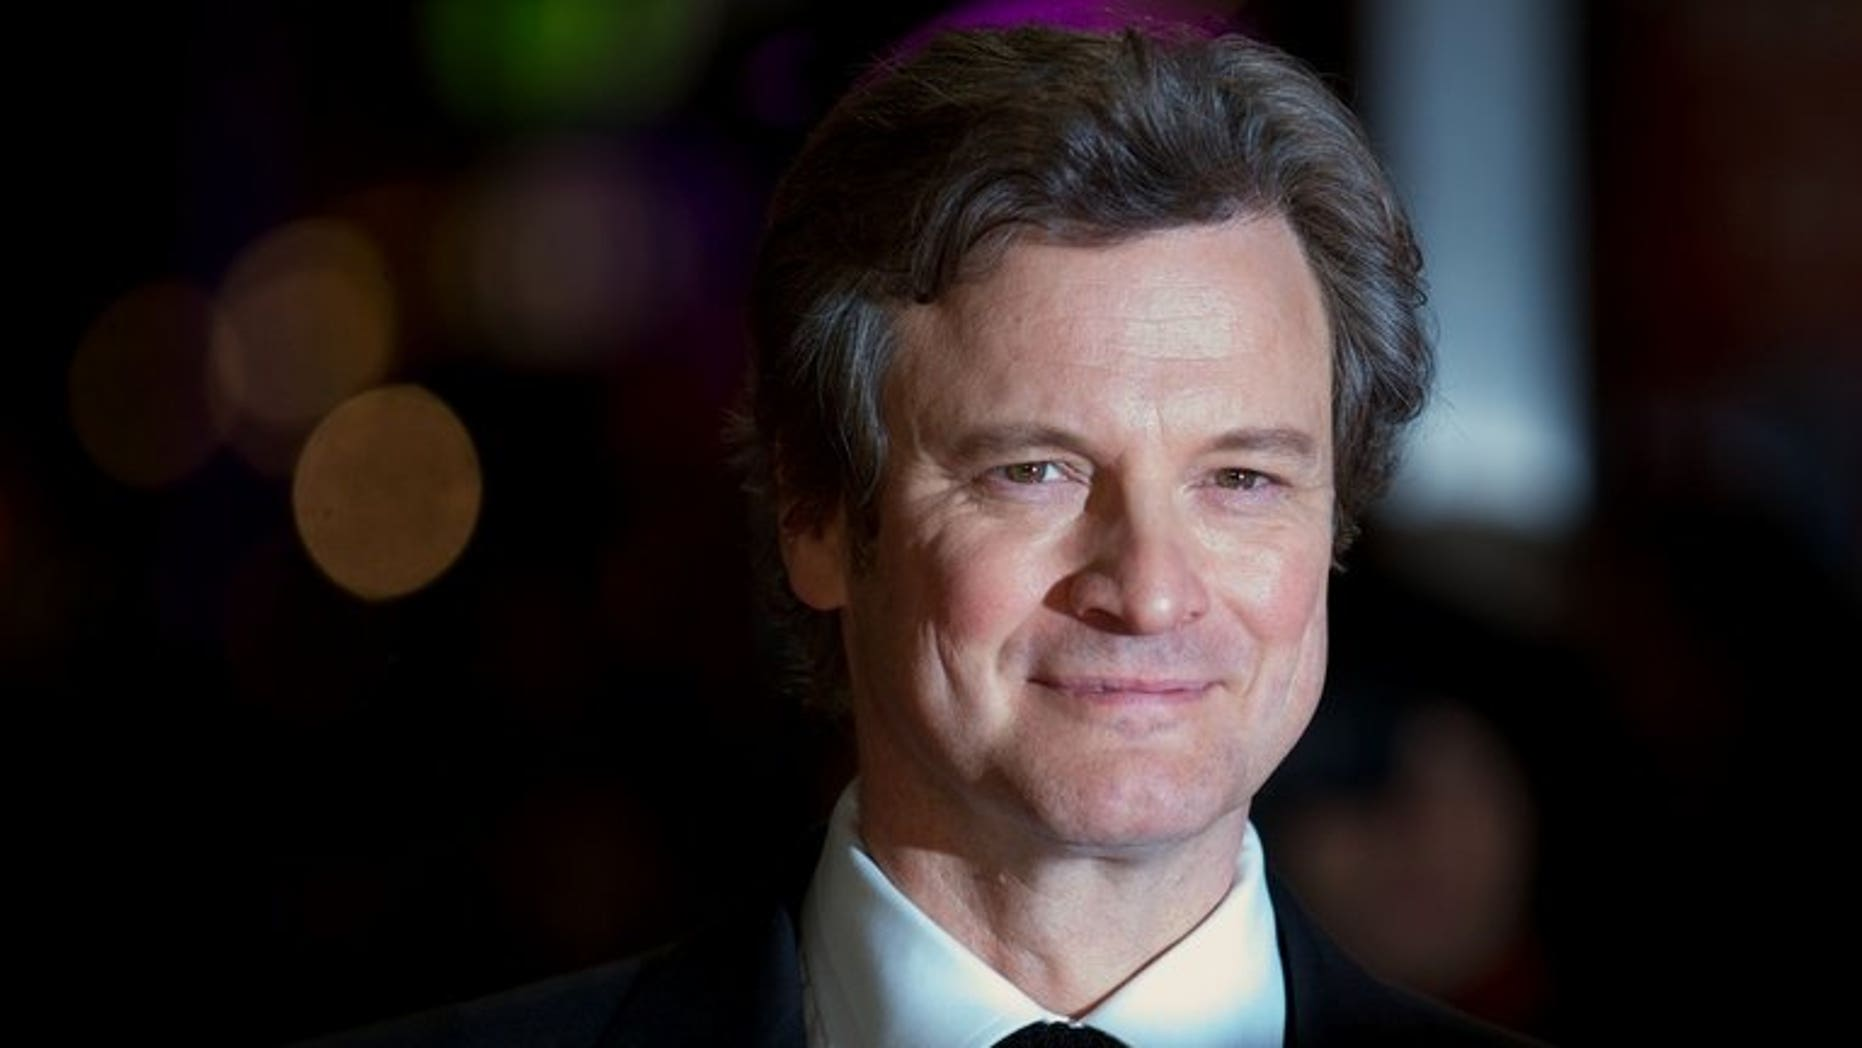 British actor Colin Firth poses on the red carpet as he arrives to attend the premiere of 'Gambit' in Leicester Square, London, on November 7, 2012. The King's Speech star Colin Firth is to voice Paddington Bear in a Hollywood film about the adventures of the duffle-coat-wearing Peruvian, media reports said on Friday.